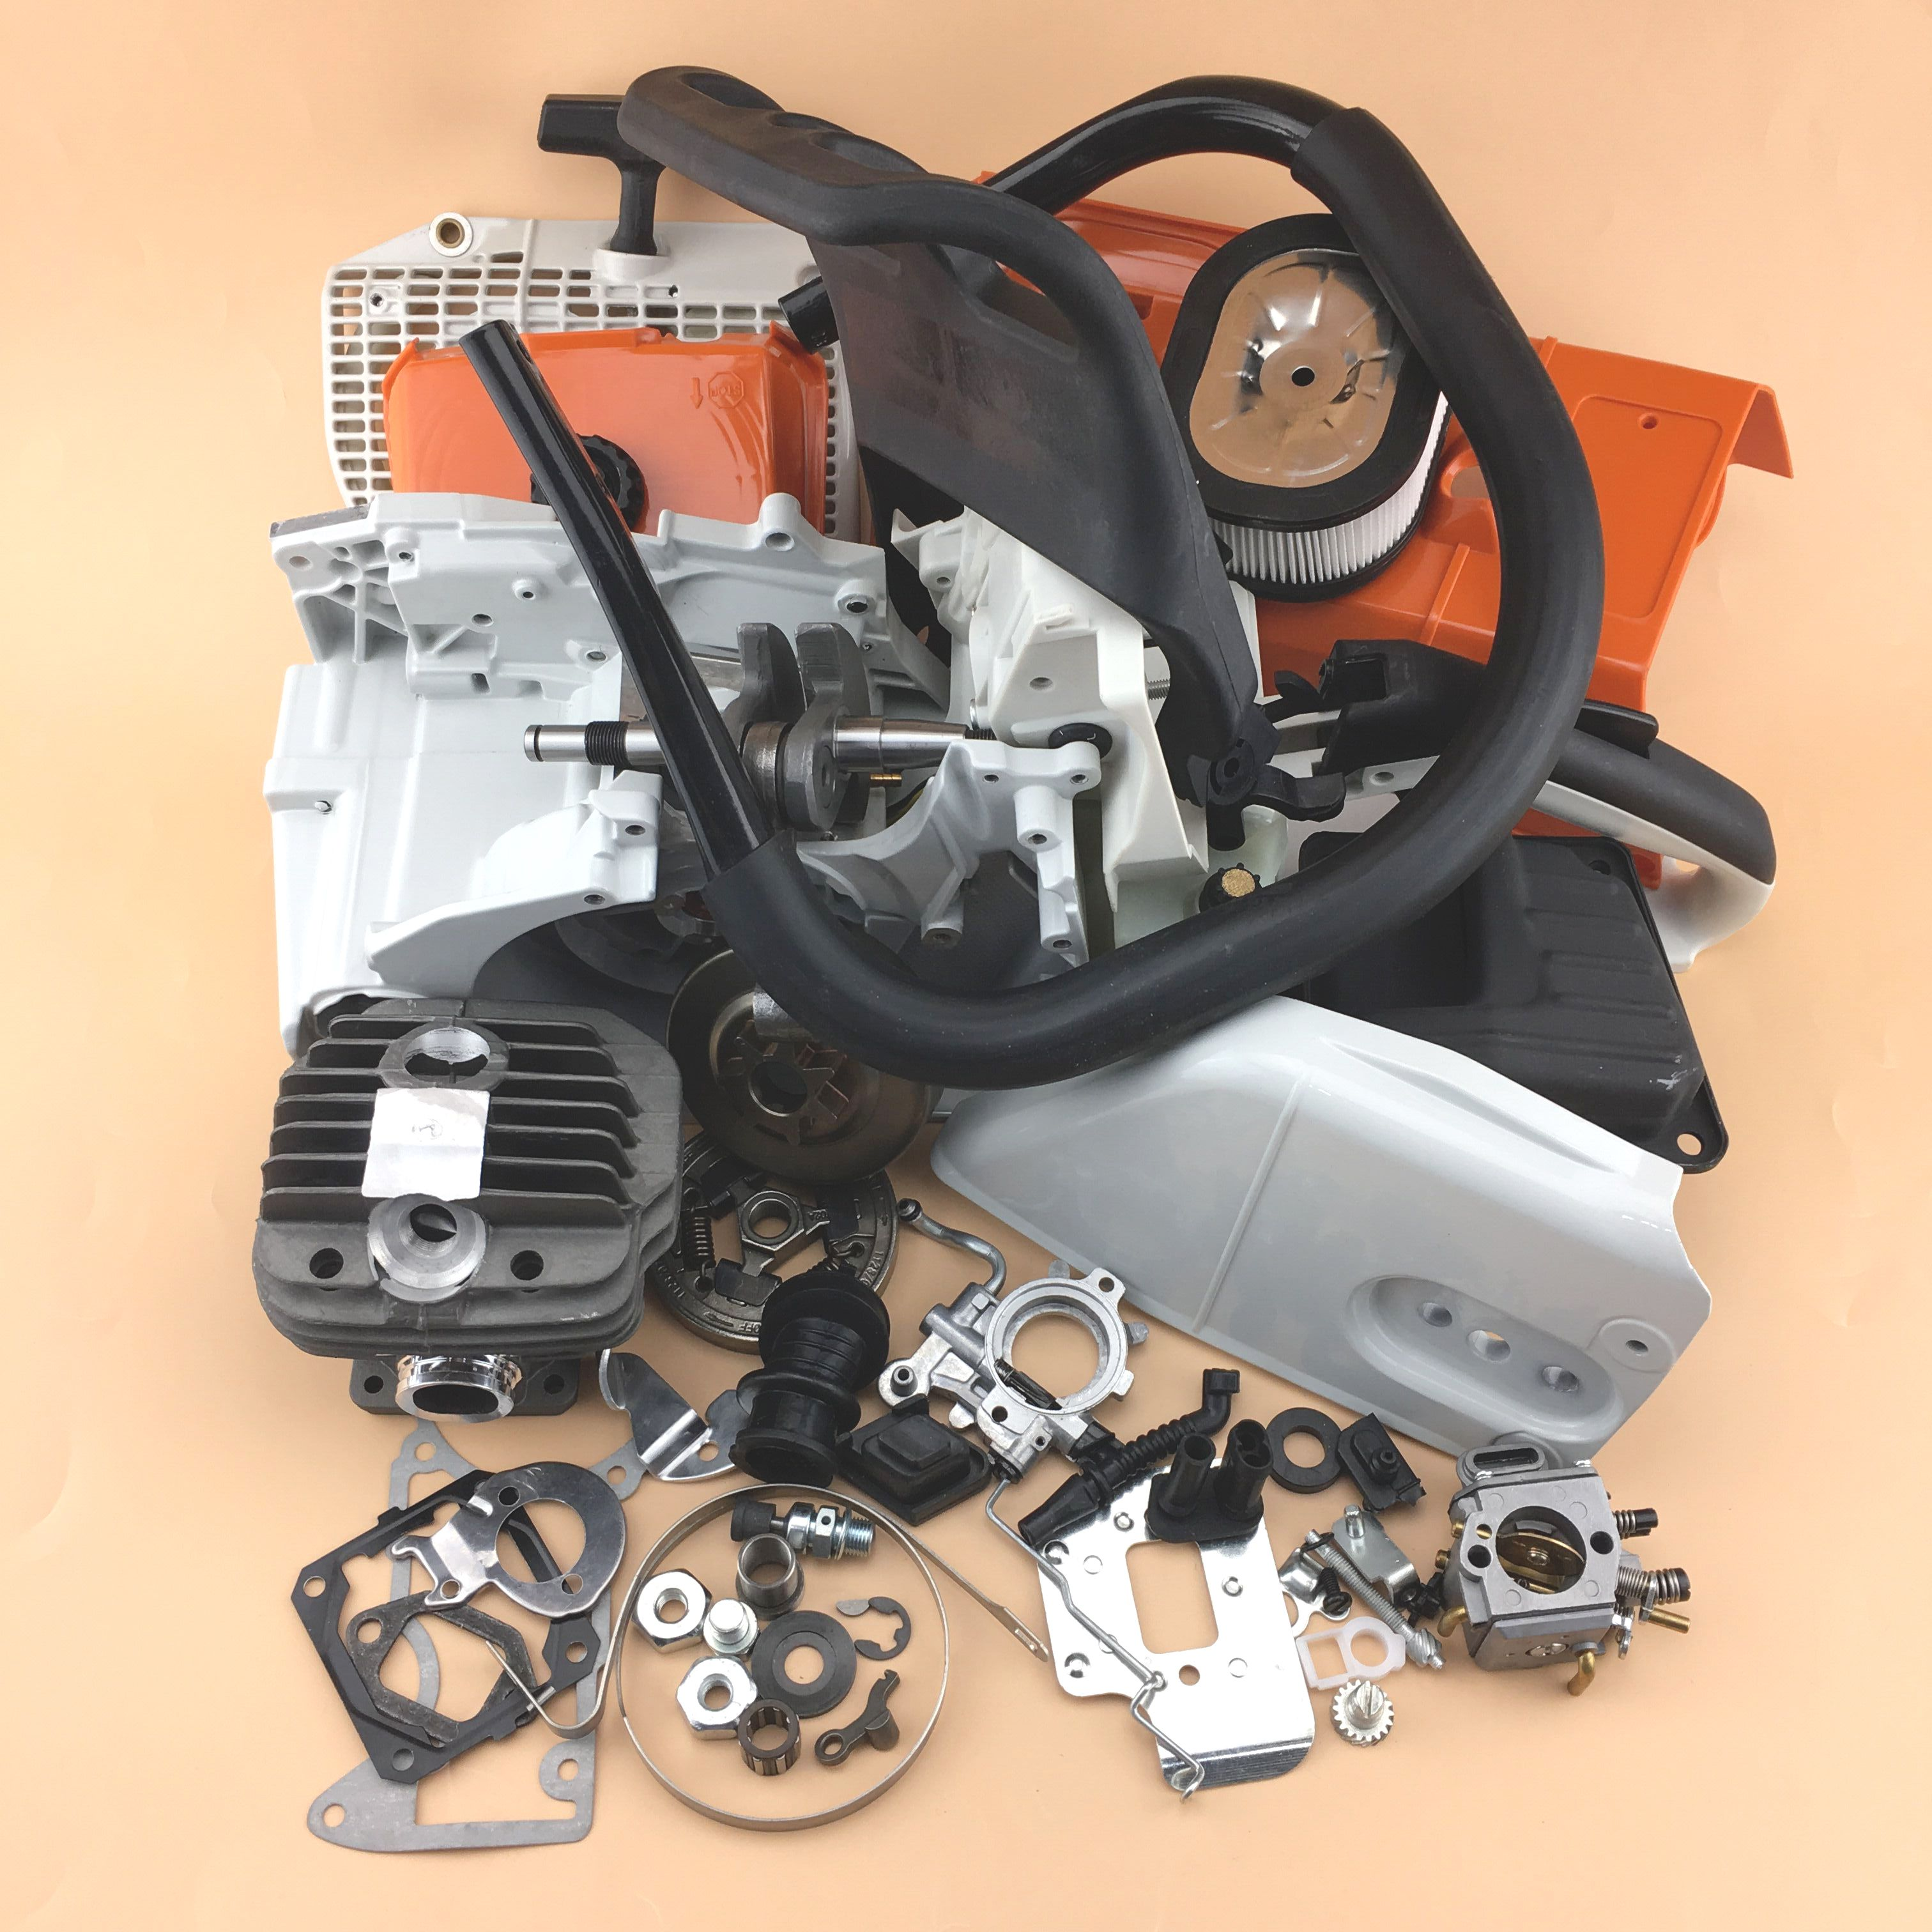 Complete Aftermarket Repair Parts For Stihl Ms440 044 Chainsaw